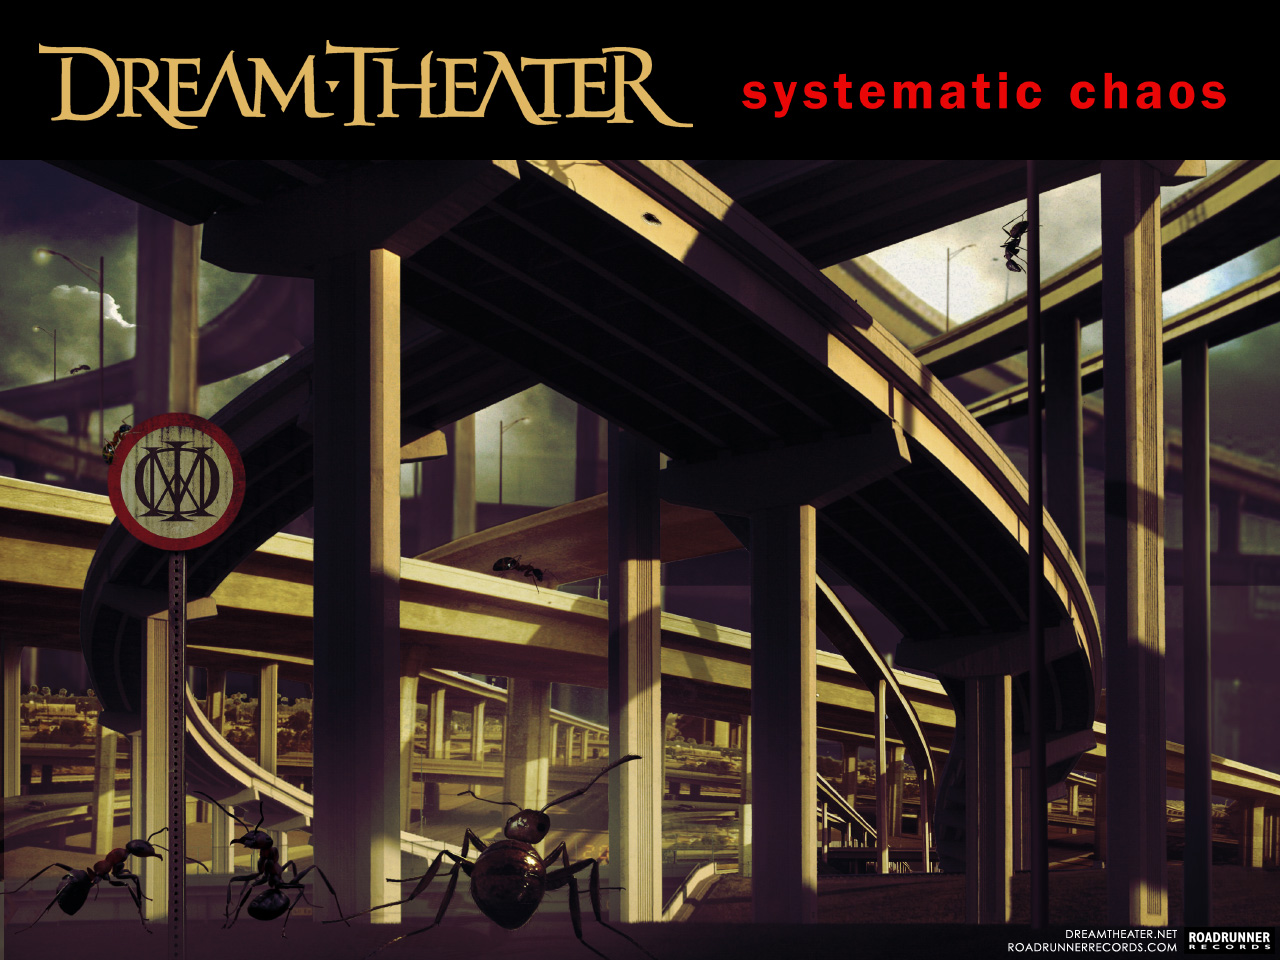 Dream Theater Computer Wallpapers Desktop Backgrounds 1280x960 ID 1280x960